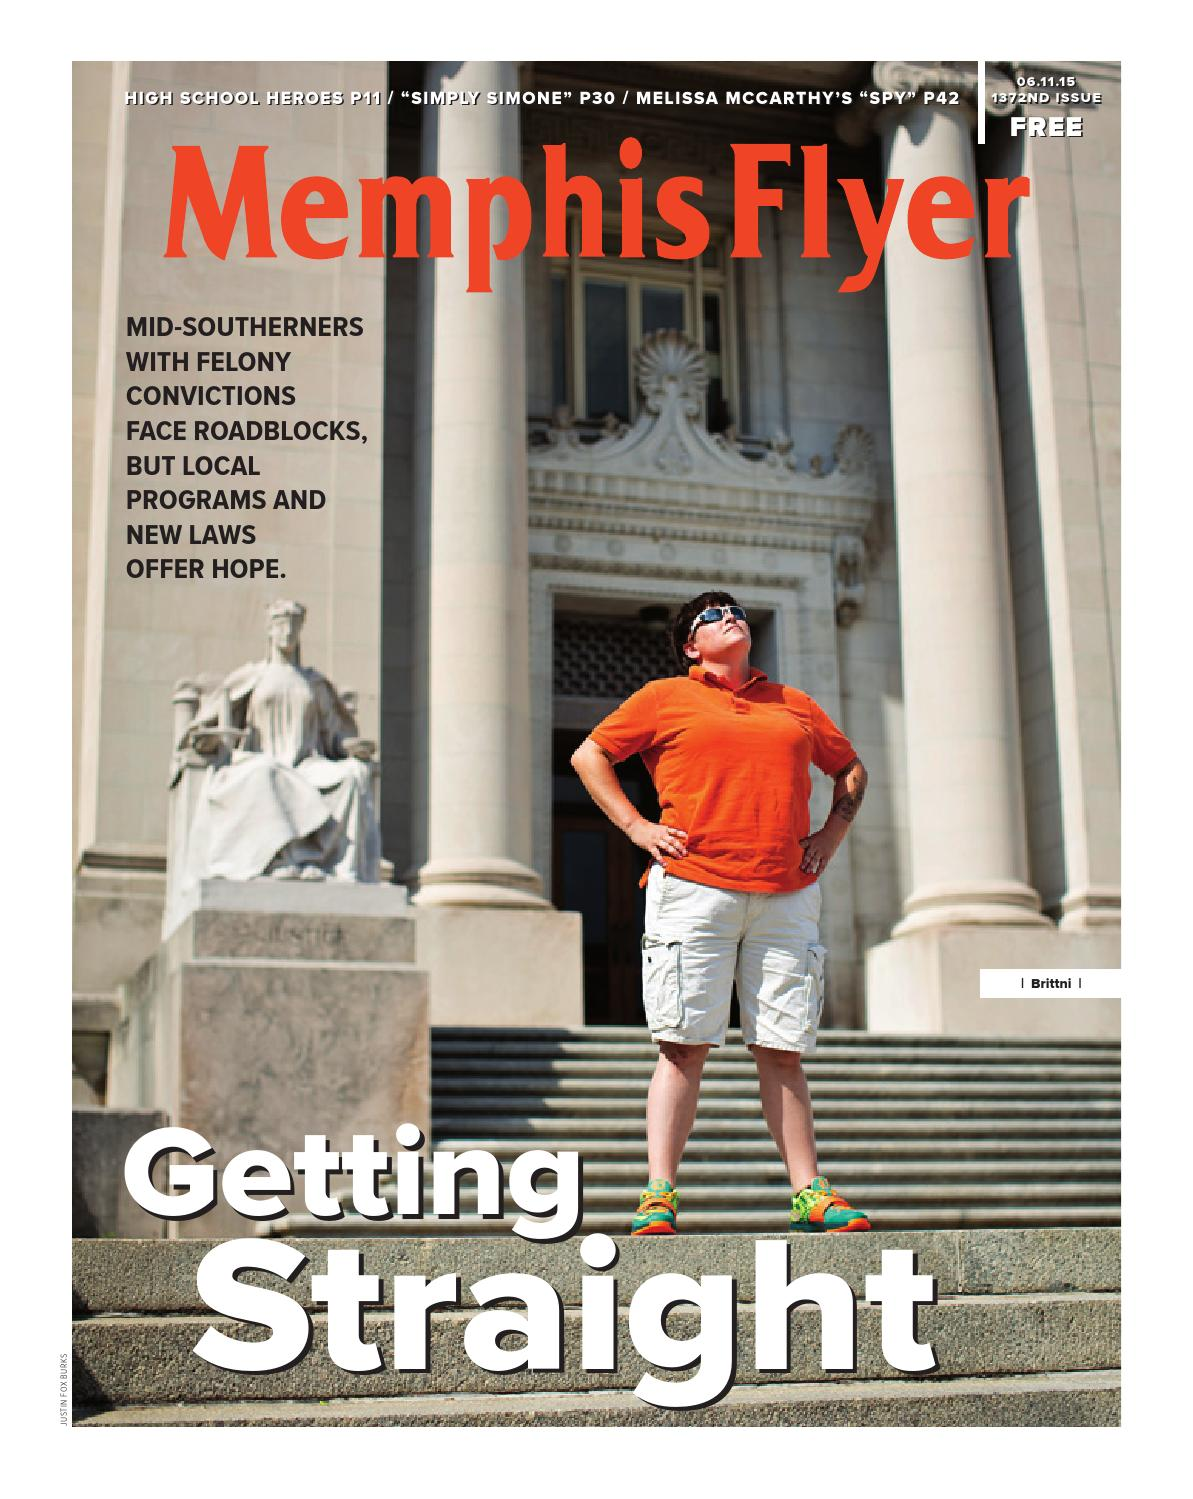 9069438a97d Memphis Flyer 06.11.15 by Contemporary Media - issuu